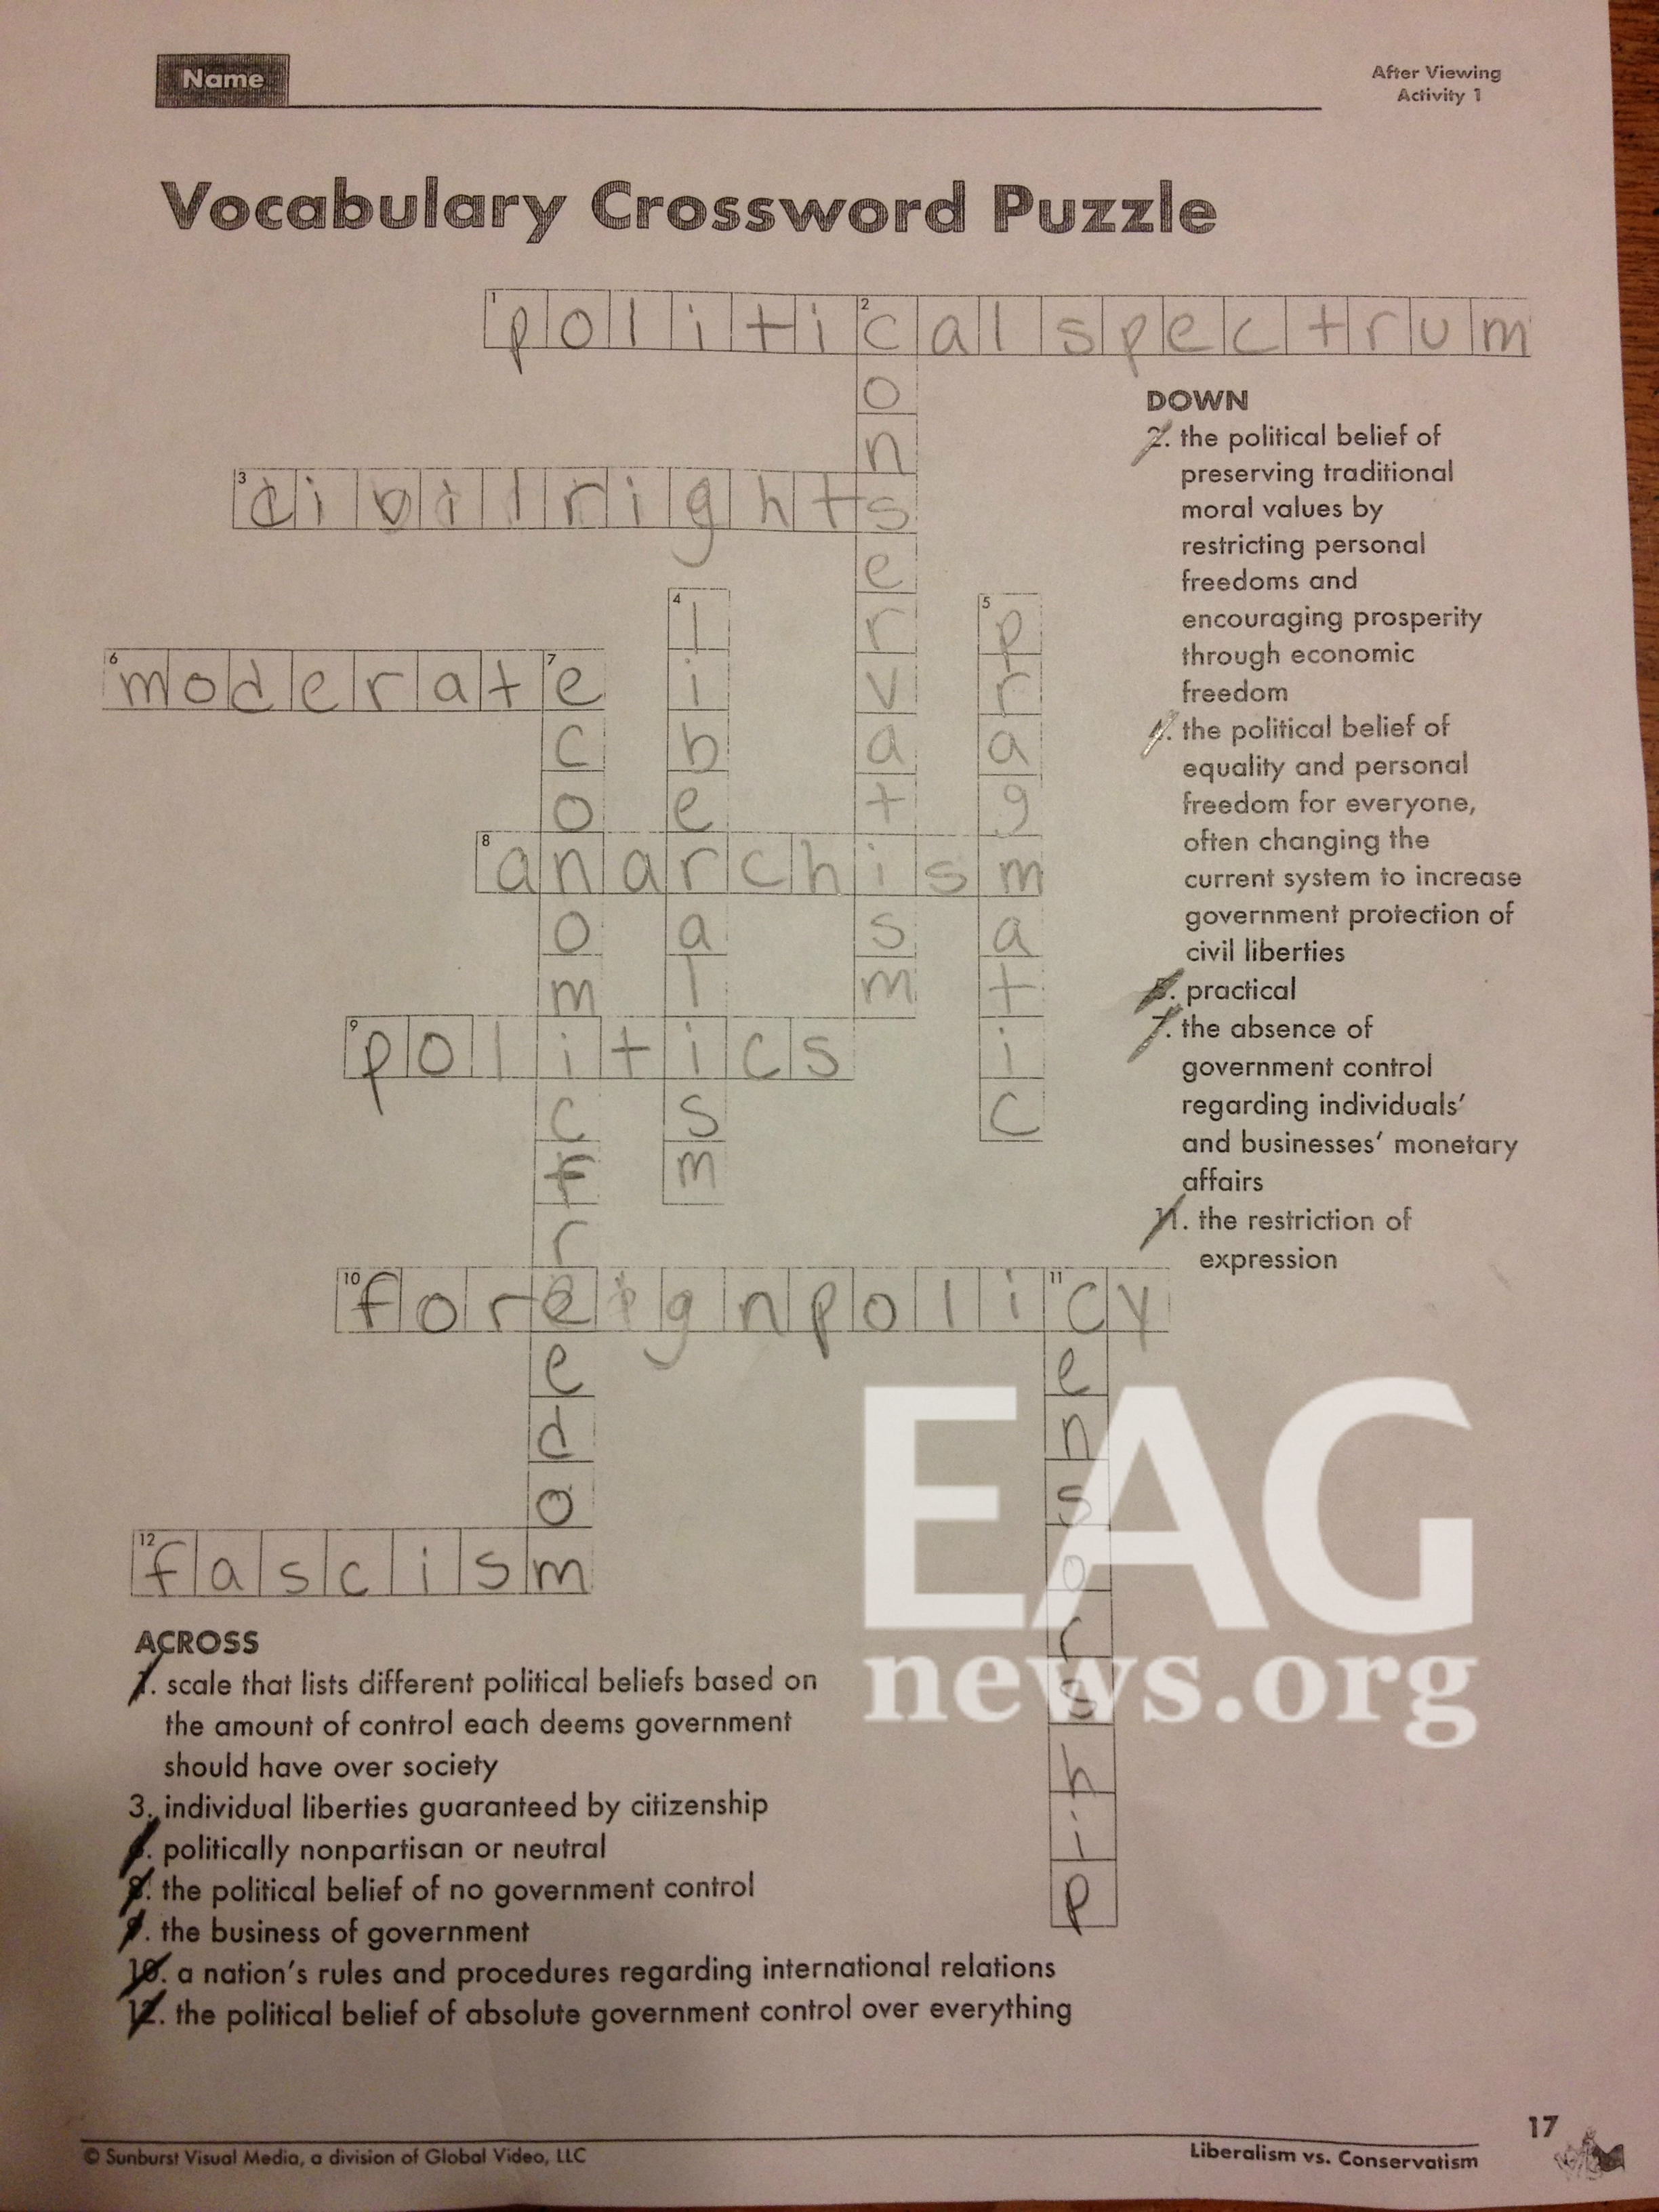 Wisconsin Public School Crossword Puzzle Conservatism Defined As Restricting Personal Freedoms